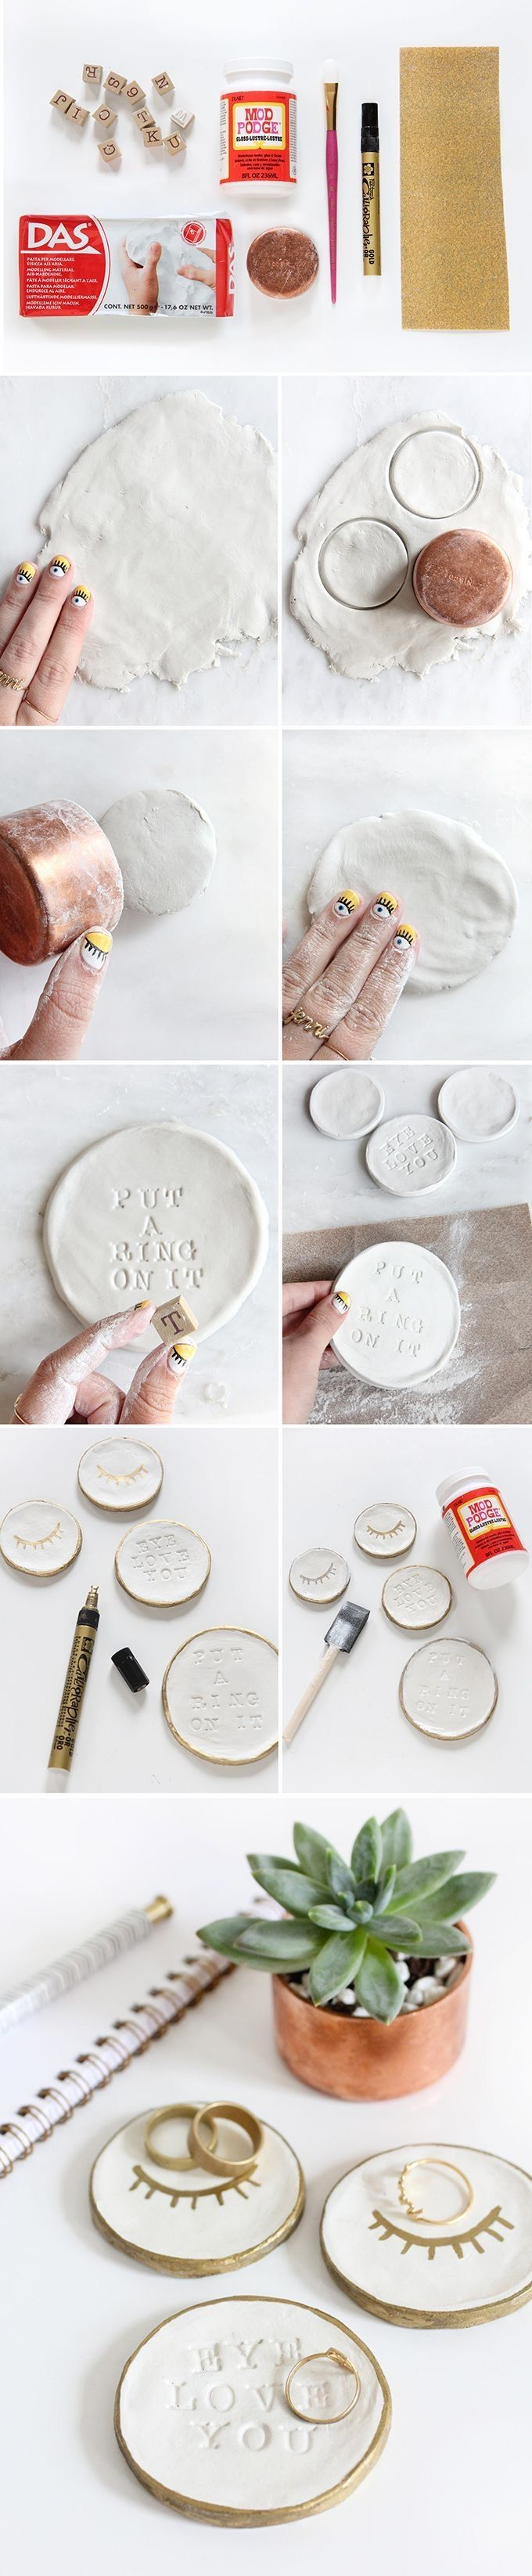 Pin By Bea Spinosi On Diy Diy Clay Crafts Diy Air Dry Clay Diy Jewelry Holder